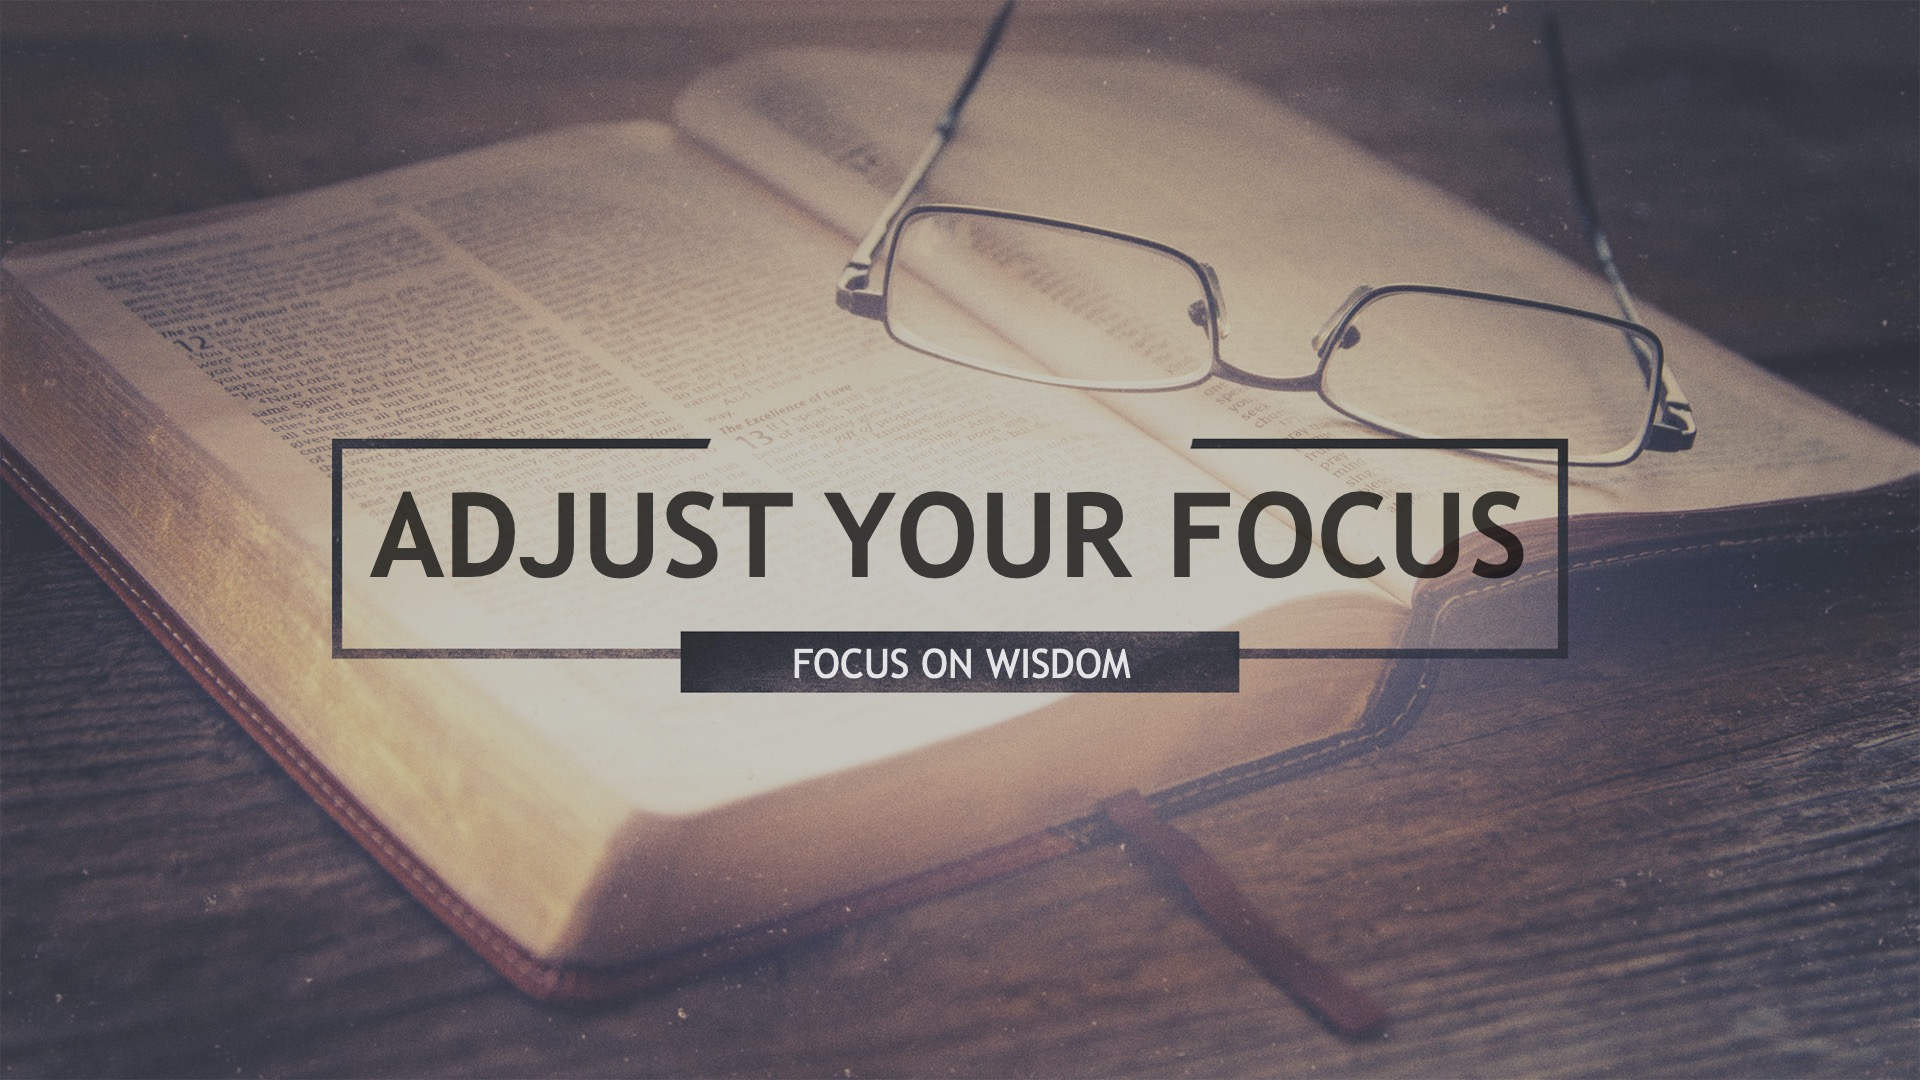 Adjust Your Focus Focus on Wisdom